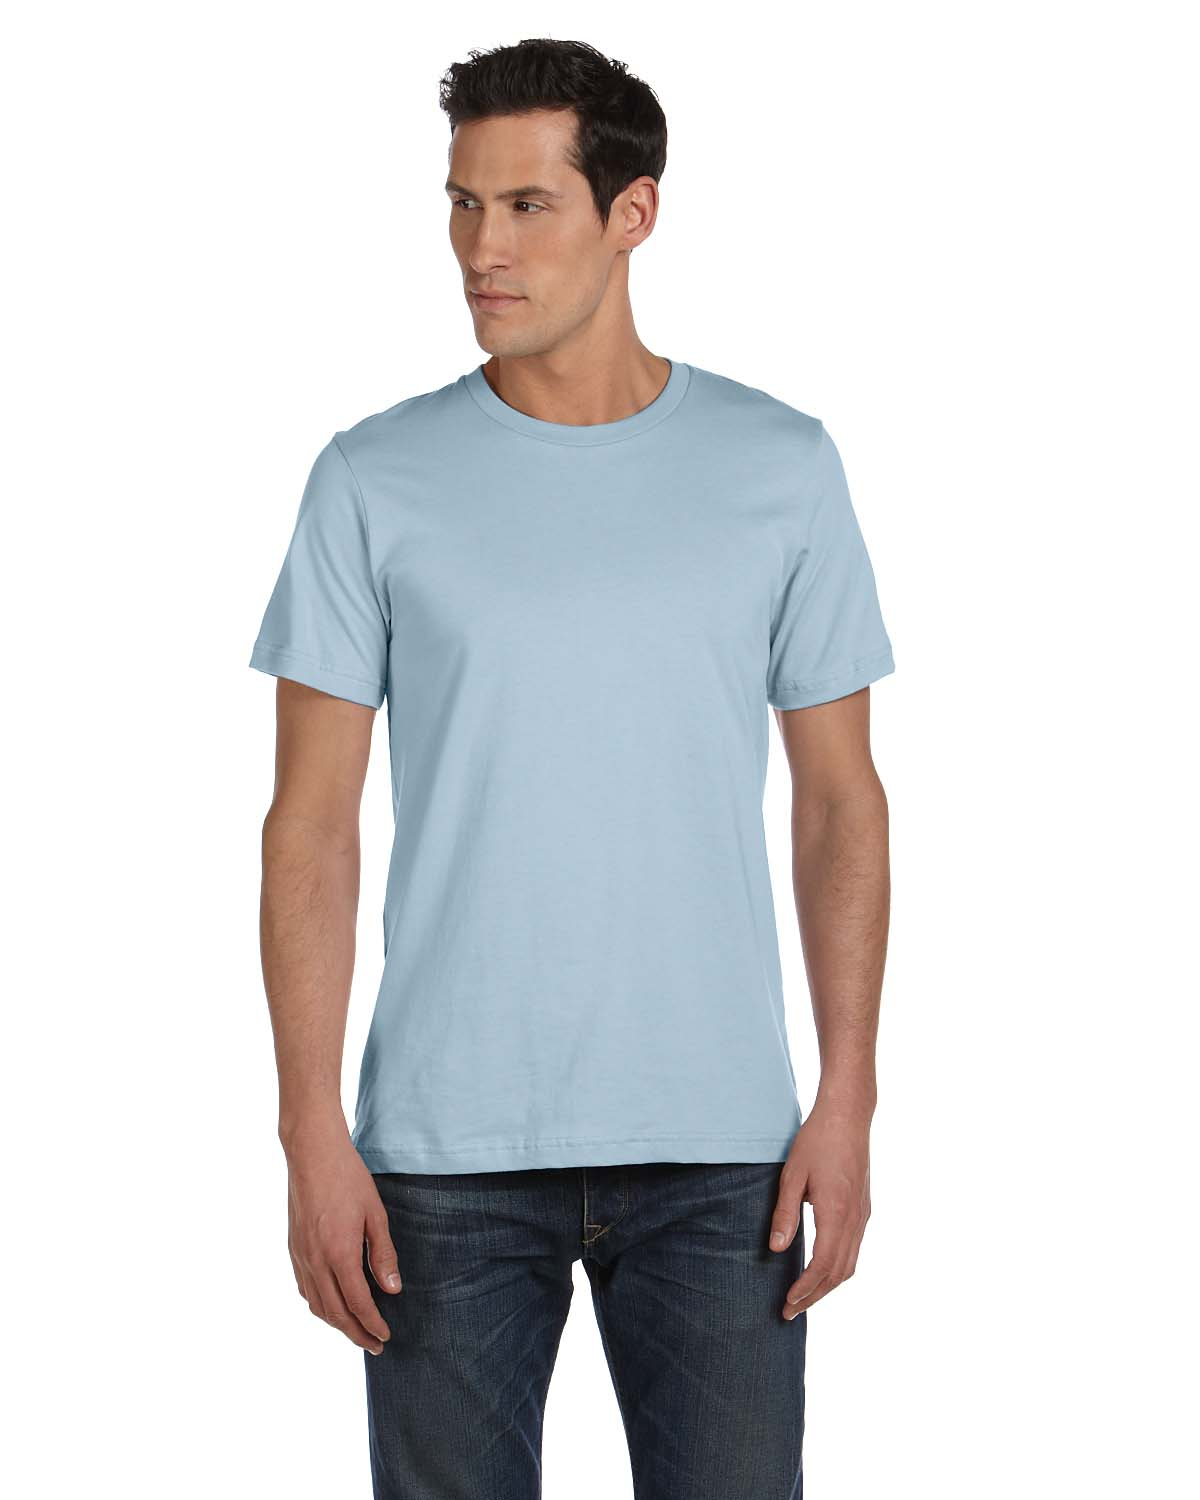 Bella Unisex Made In The USA Jersey Short-Sleeve T-Shirt